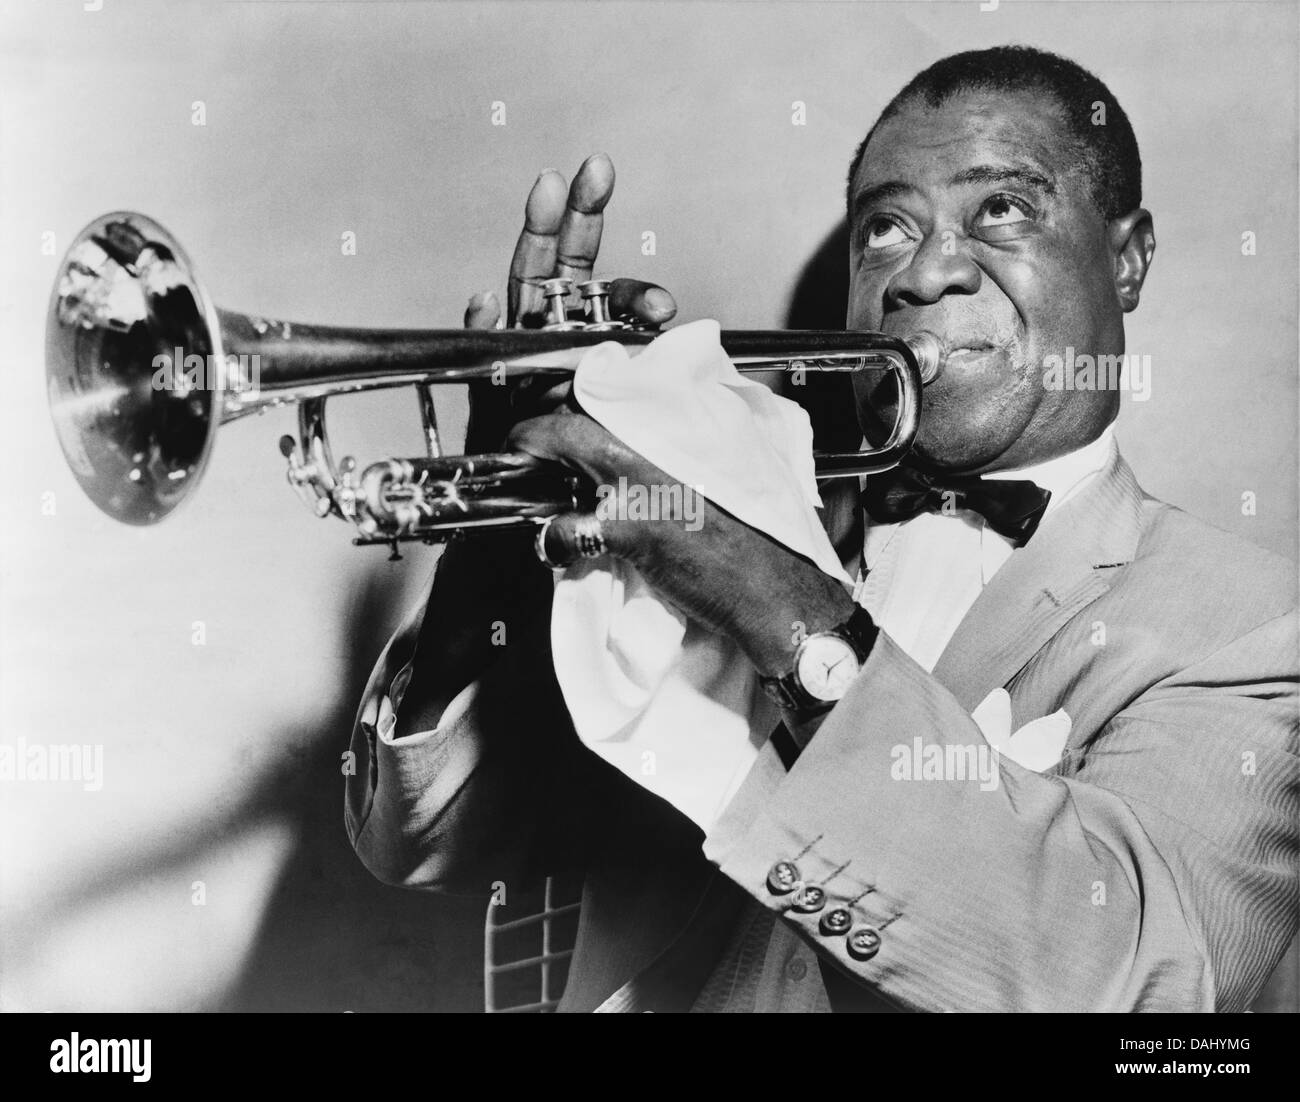 LOUIS ARMSTRONG (1901-1971) US jazz trumpet player about 1953 - Stock Image